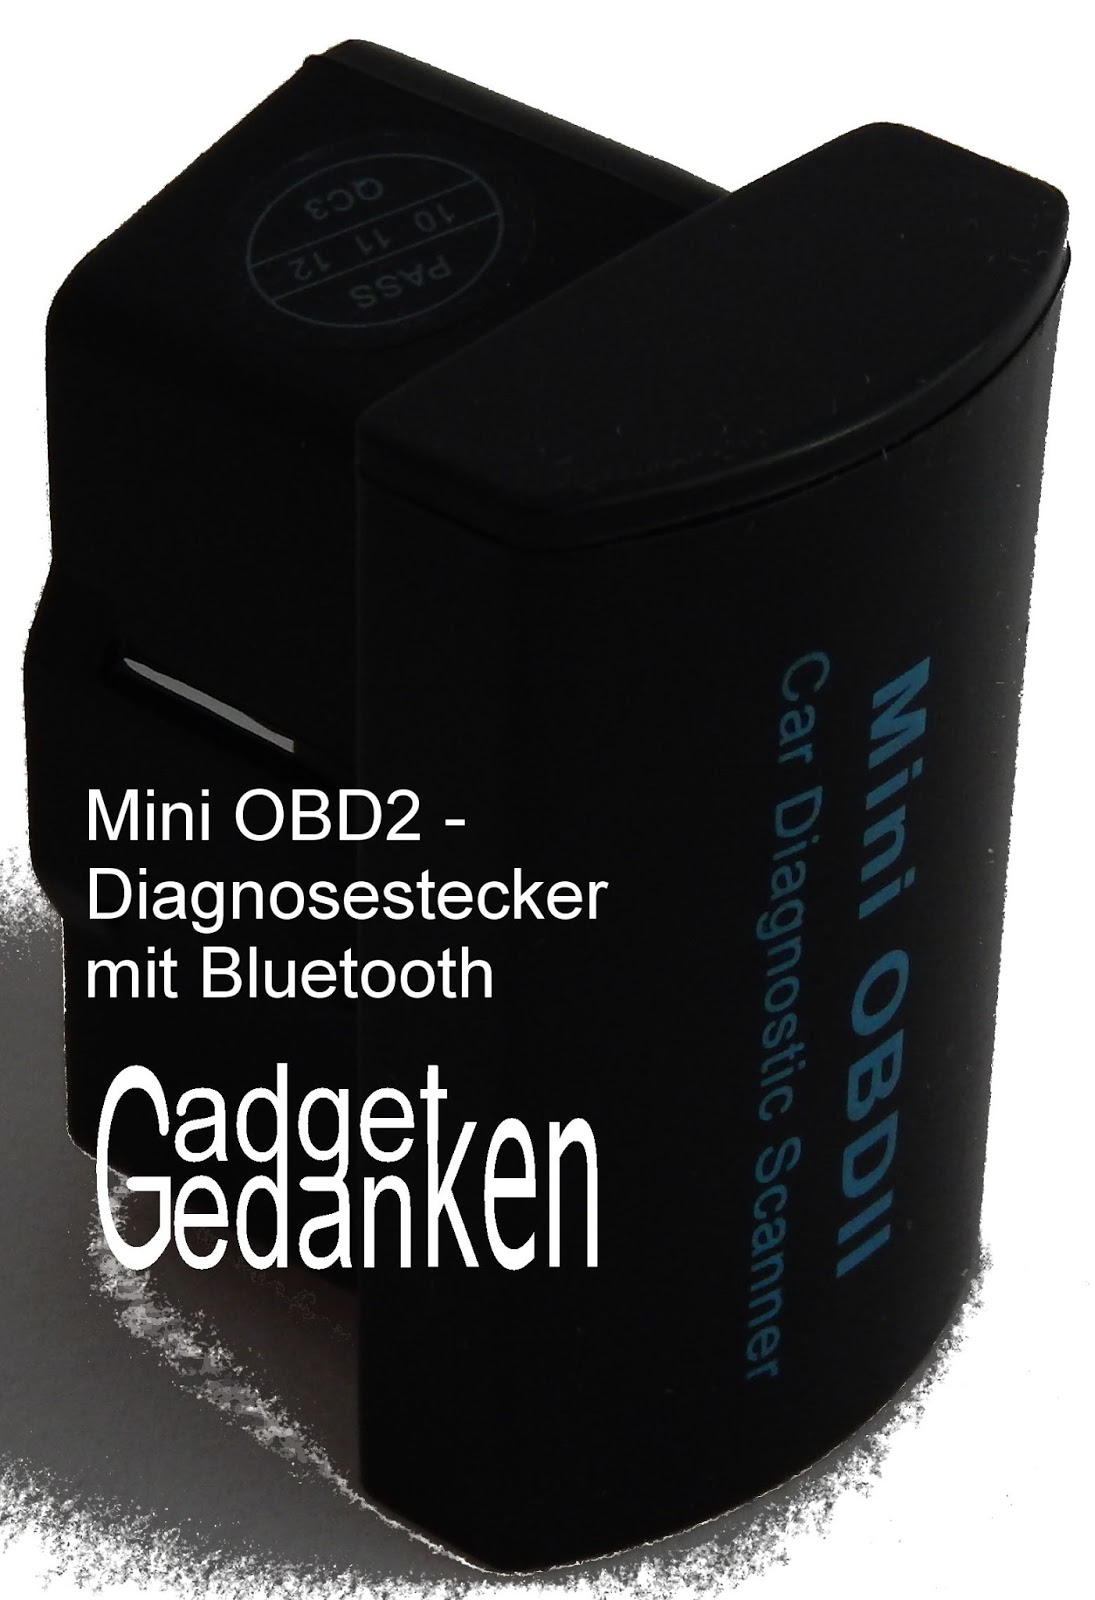 gadgetgedanken mini obd2 v2 1 diagnosestecker mit bluetooth. Black Bedroom Furniture Sets. Home Design Ideas